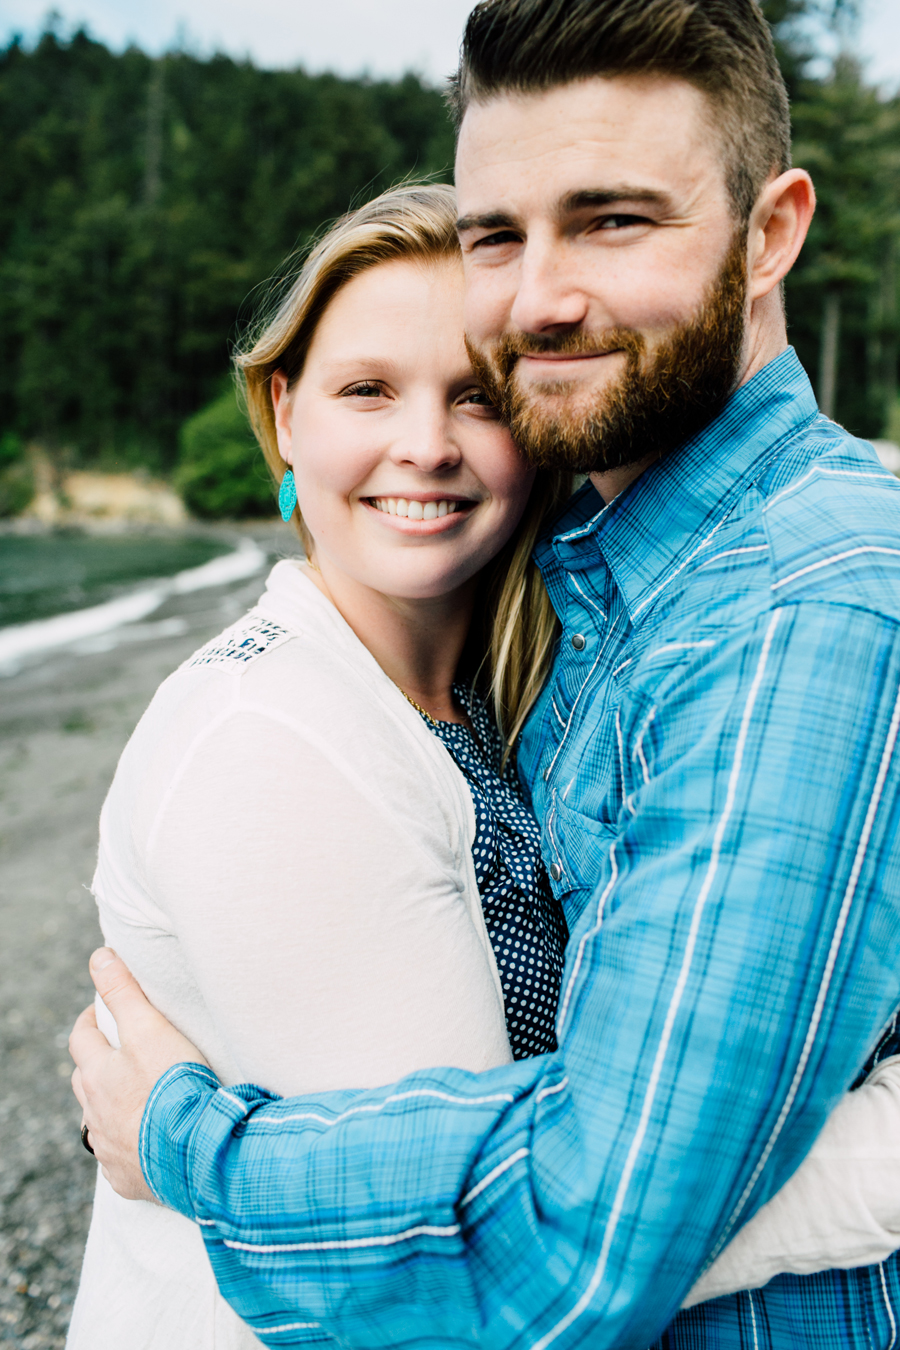 016-bellingham-skagit-engagement-photographer-photo-bowman-bay-jessie.jpg